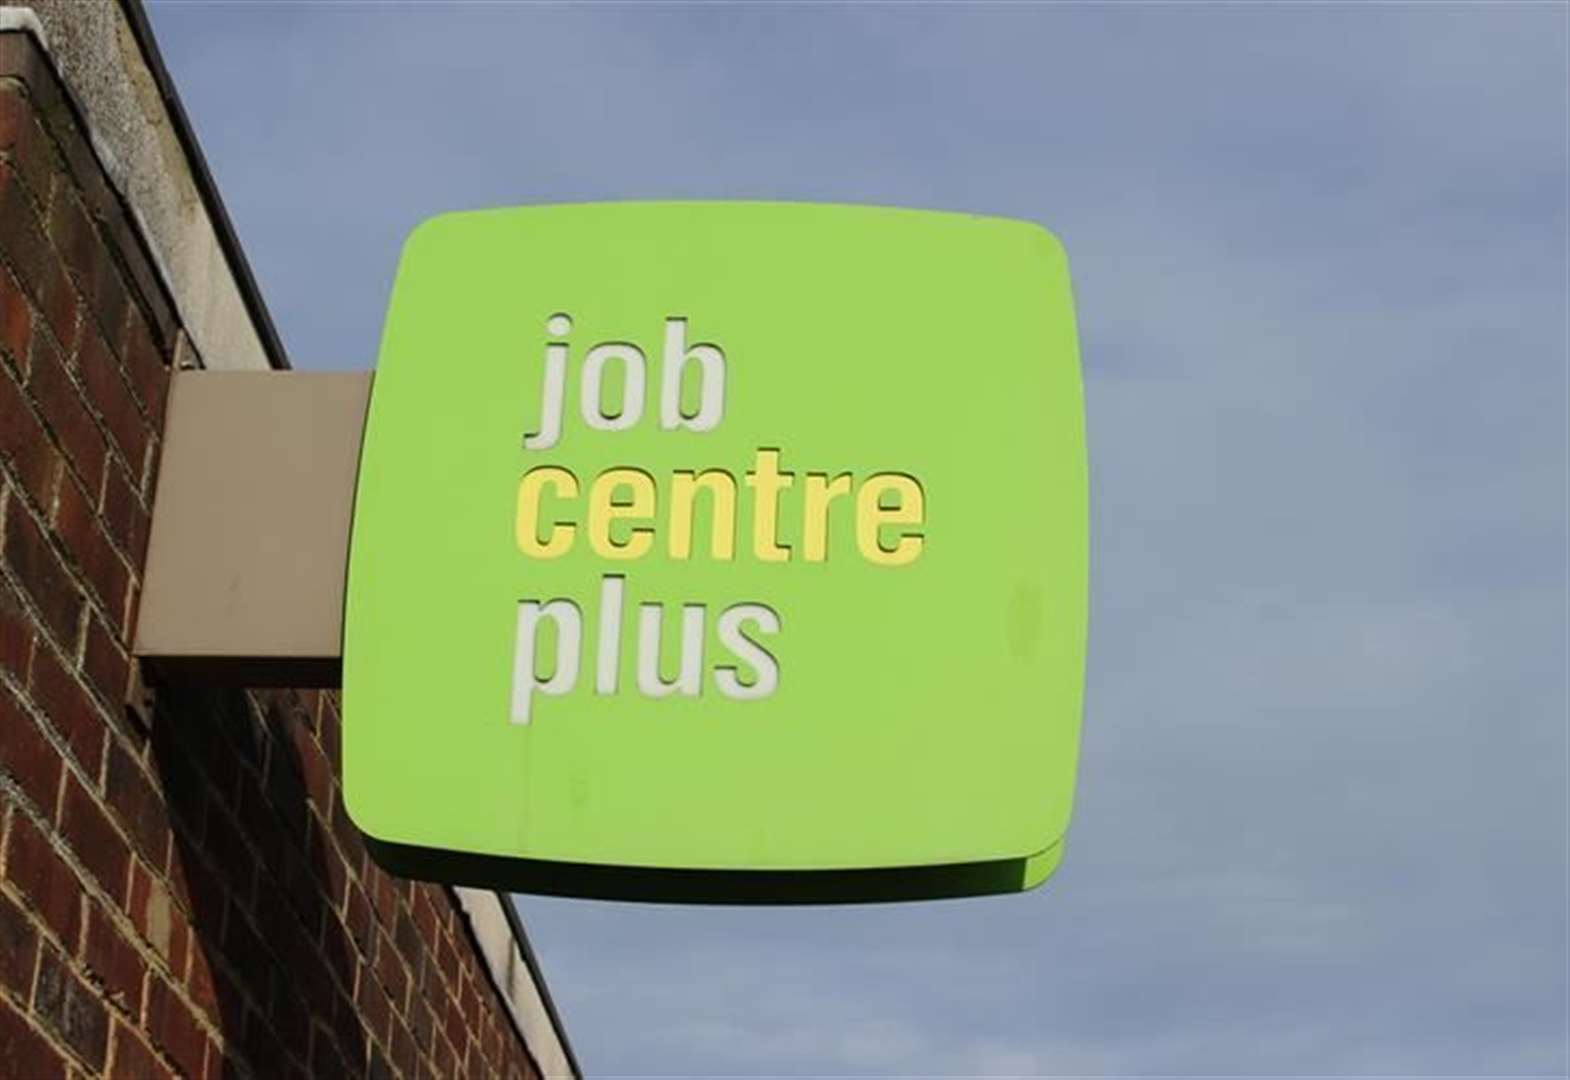 Benefits claims up by 950 in a month